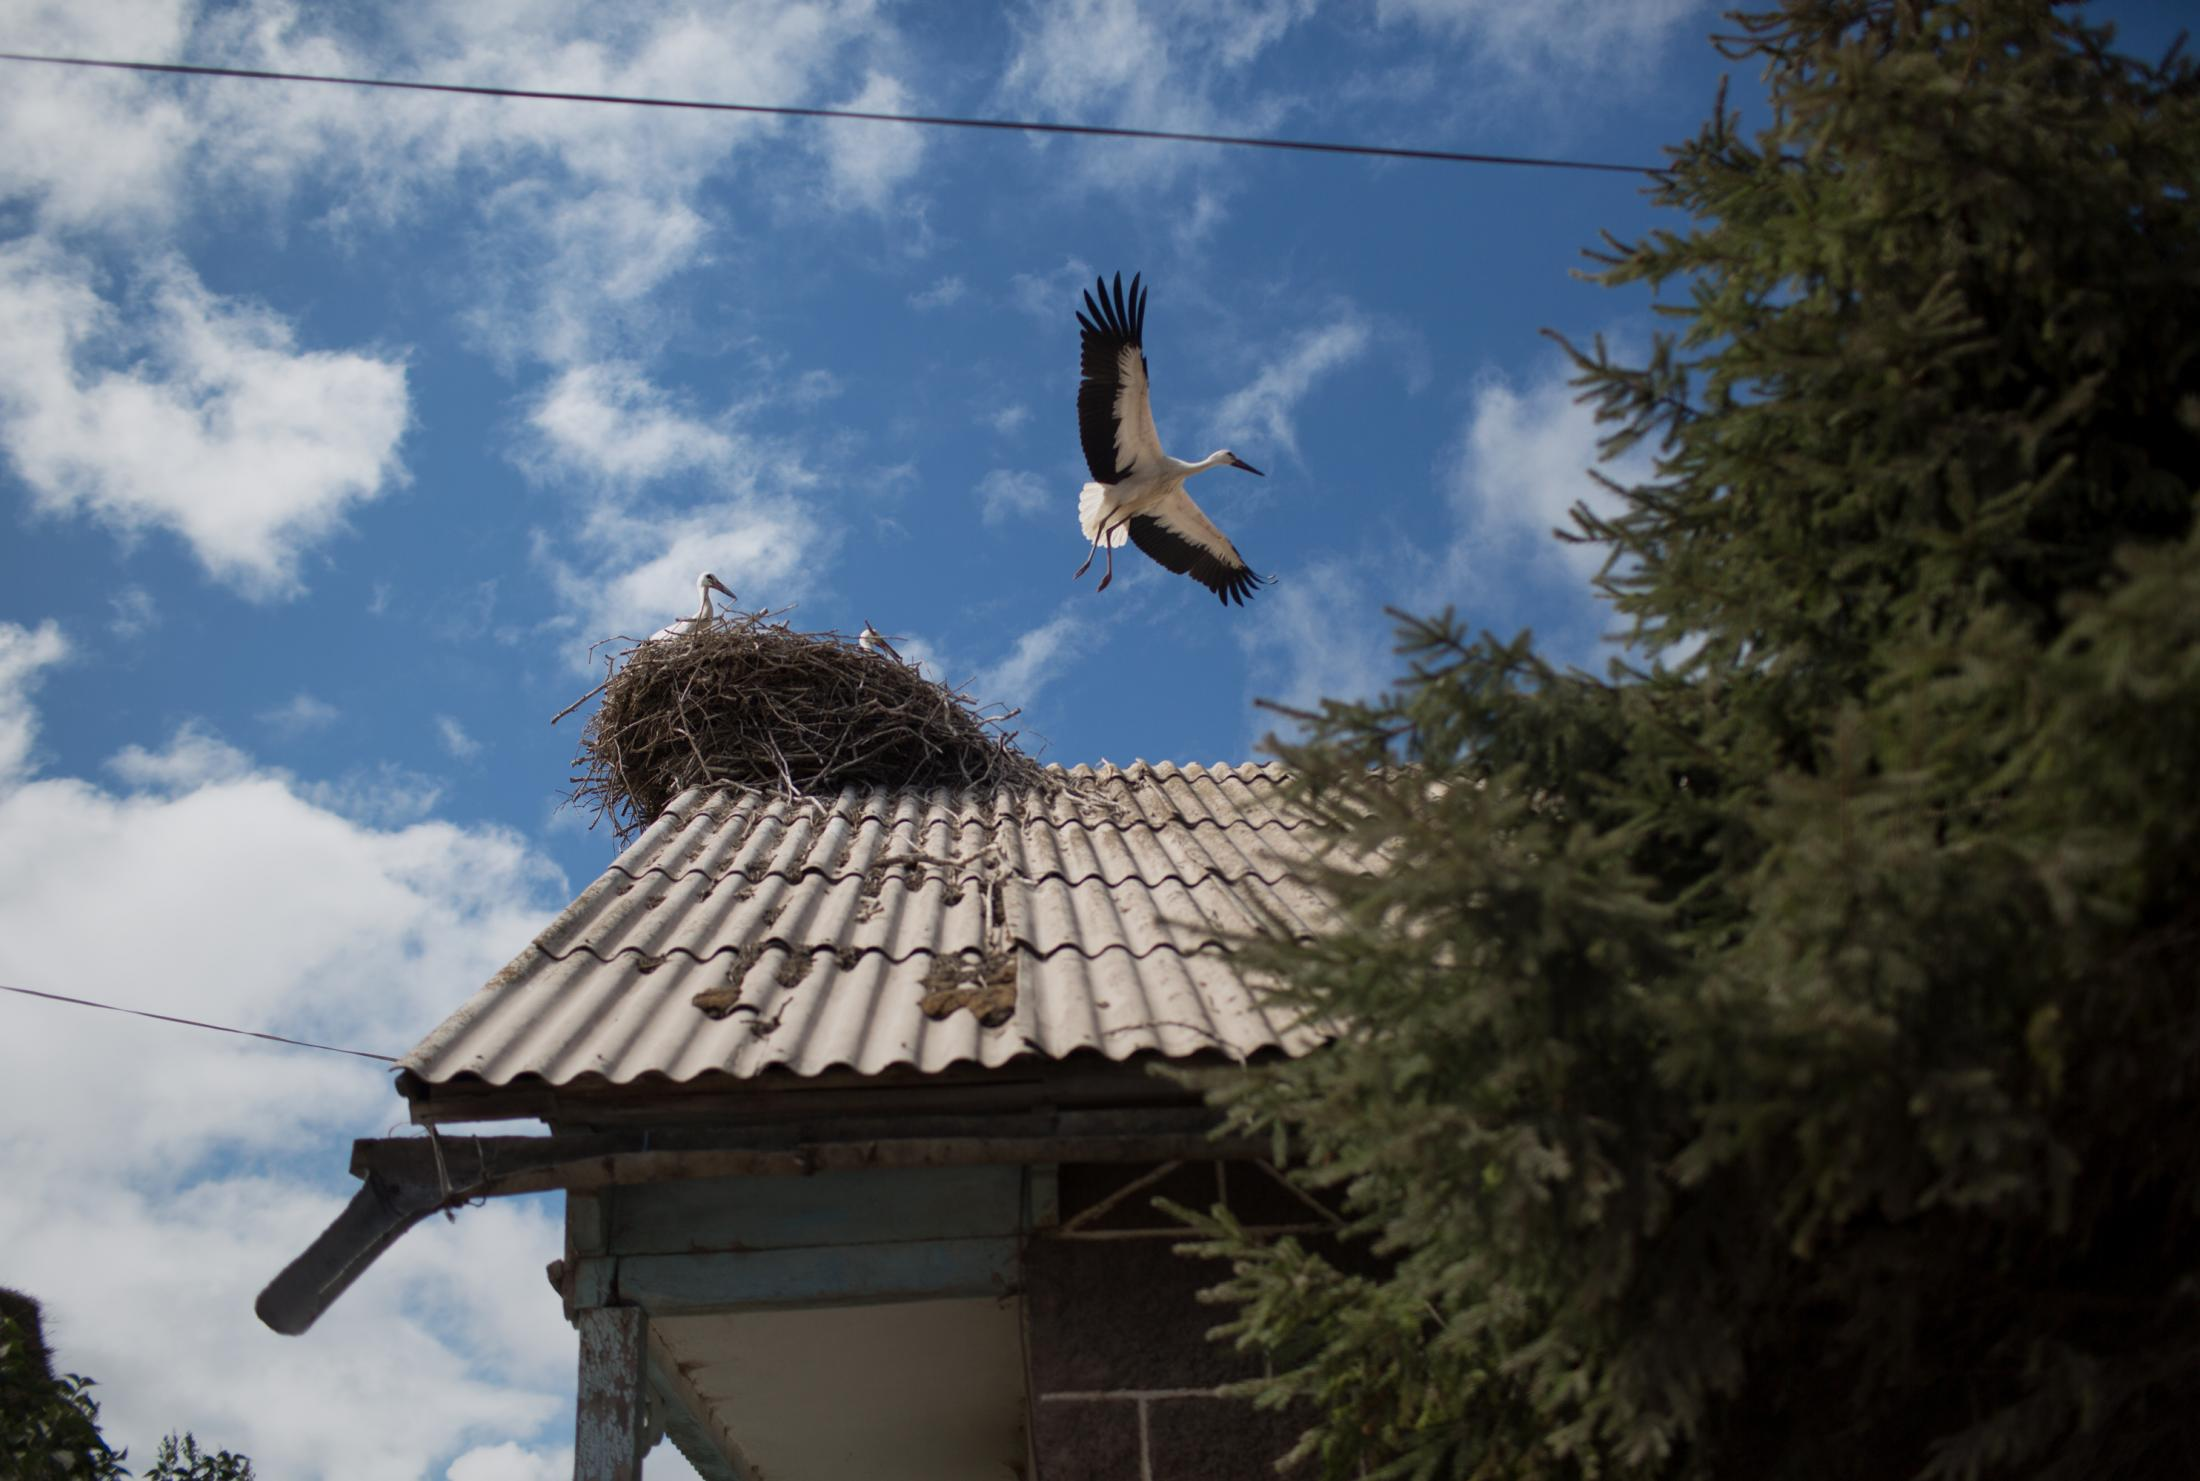 The fourth group that coexists in Gorelovka with everyone else is the storks who make their homes on many of the village's roofs and chimneys.